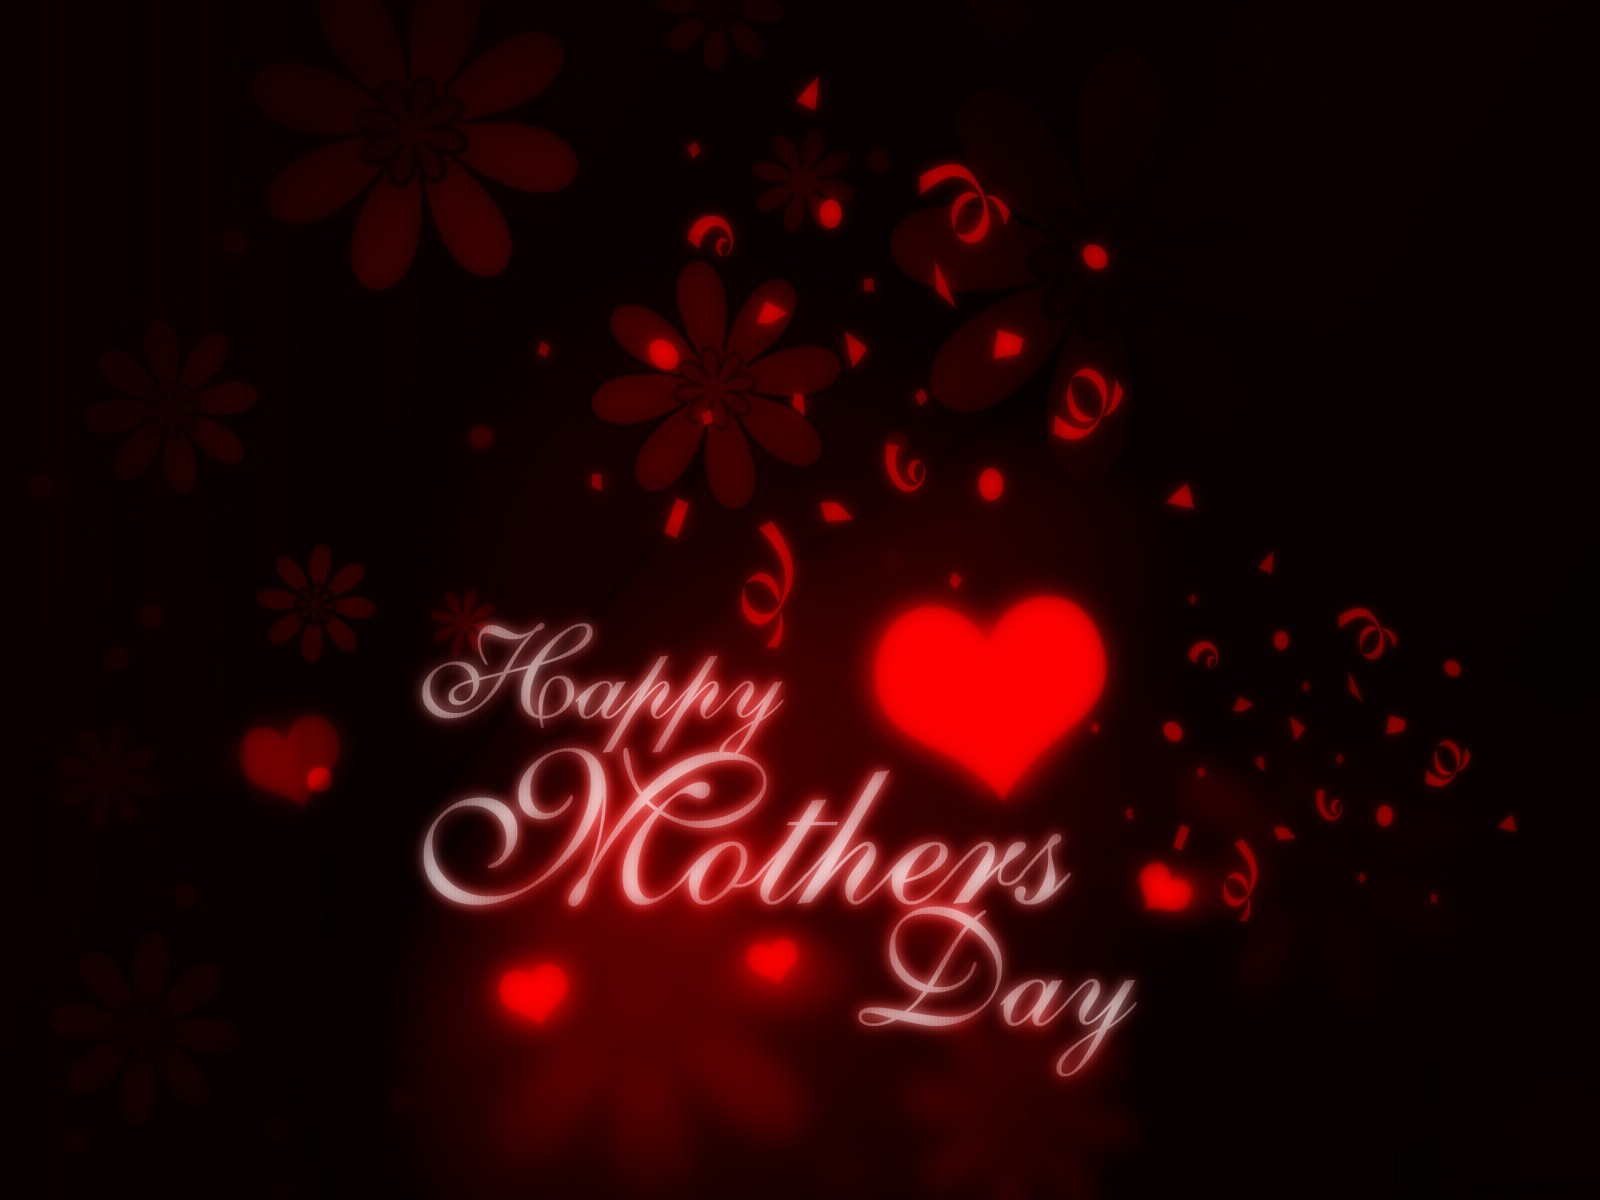 Free Download Happy Mothers Day Exclusive Hd Wallpapers 3125